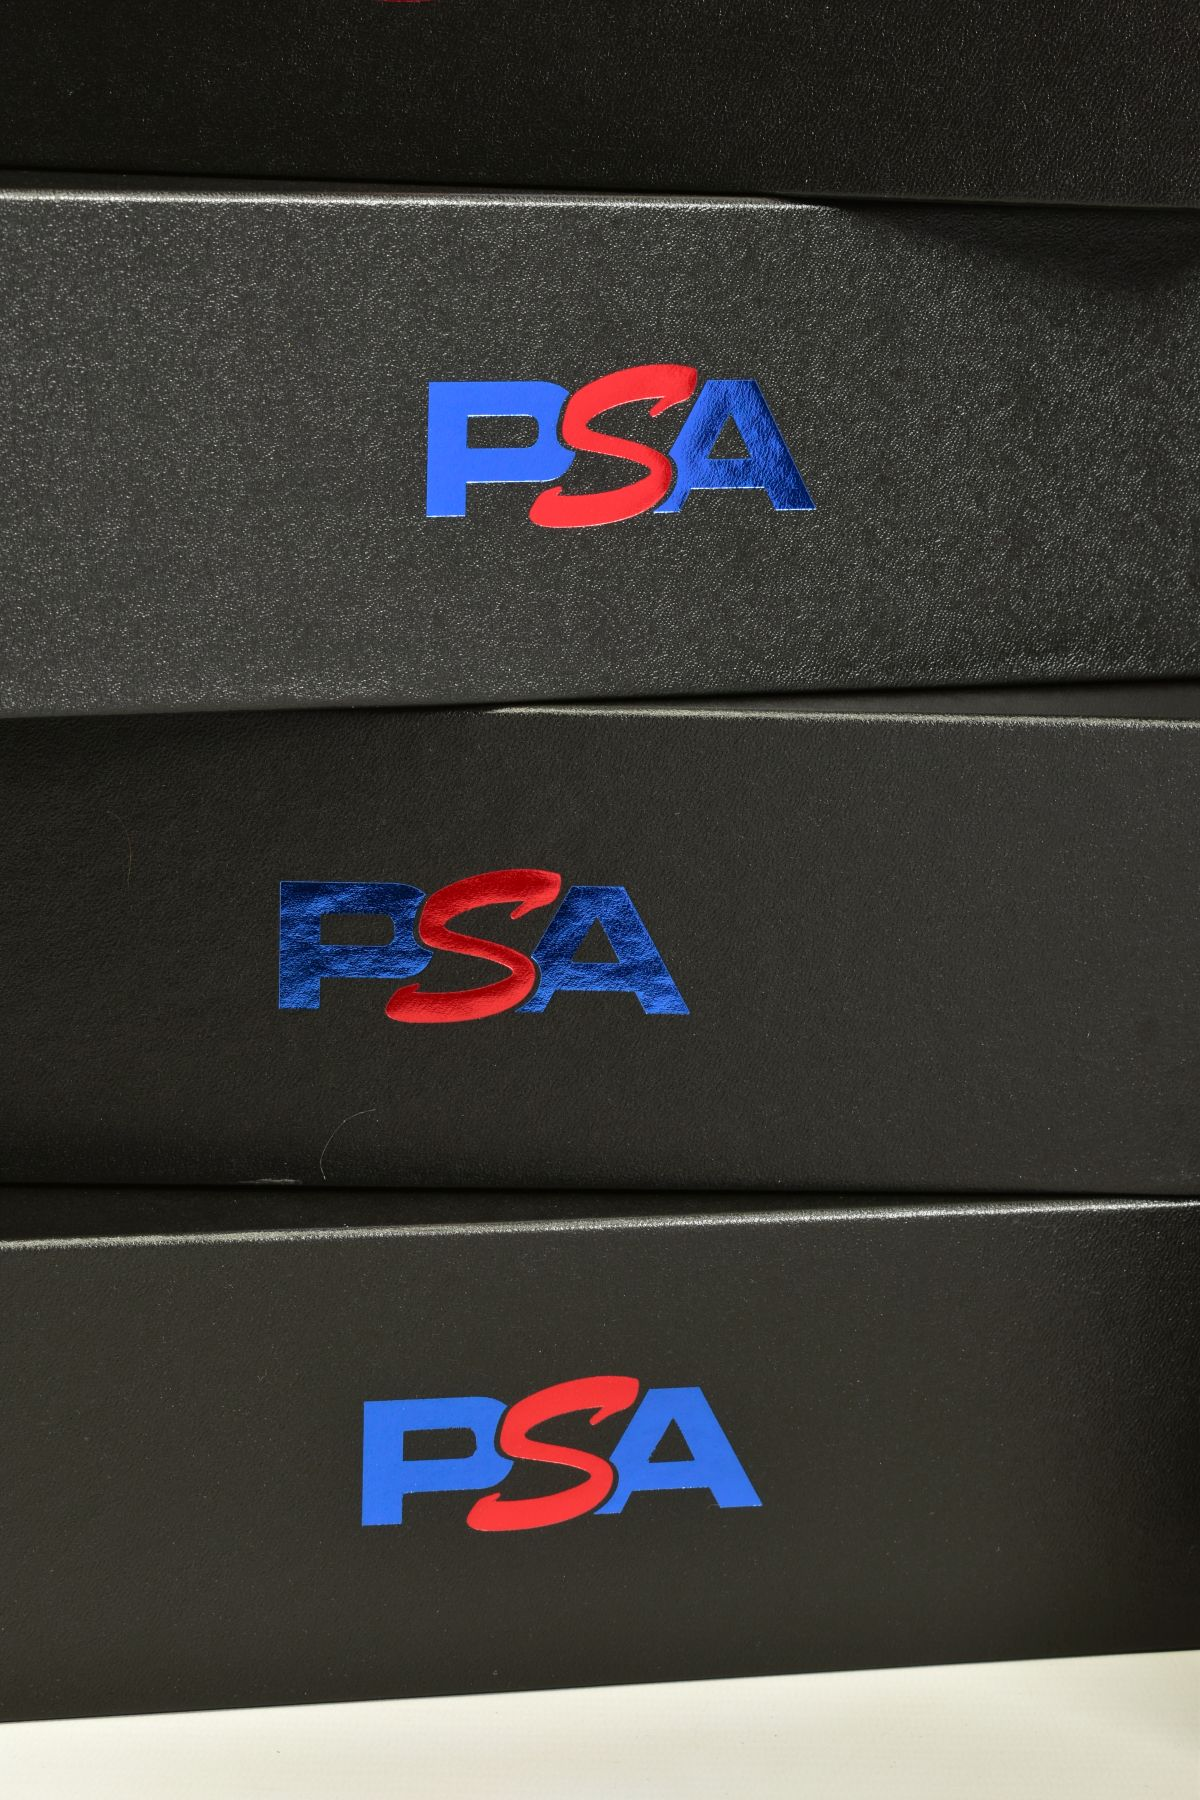 A QUANTITY OF EMPTY PSA CARDBOARD CARD STORAGE BOXES, lidded cardboard boxes finished in black - Image 3 of 3